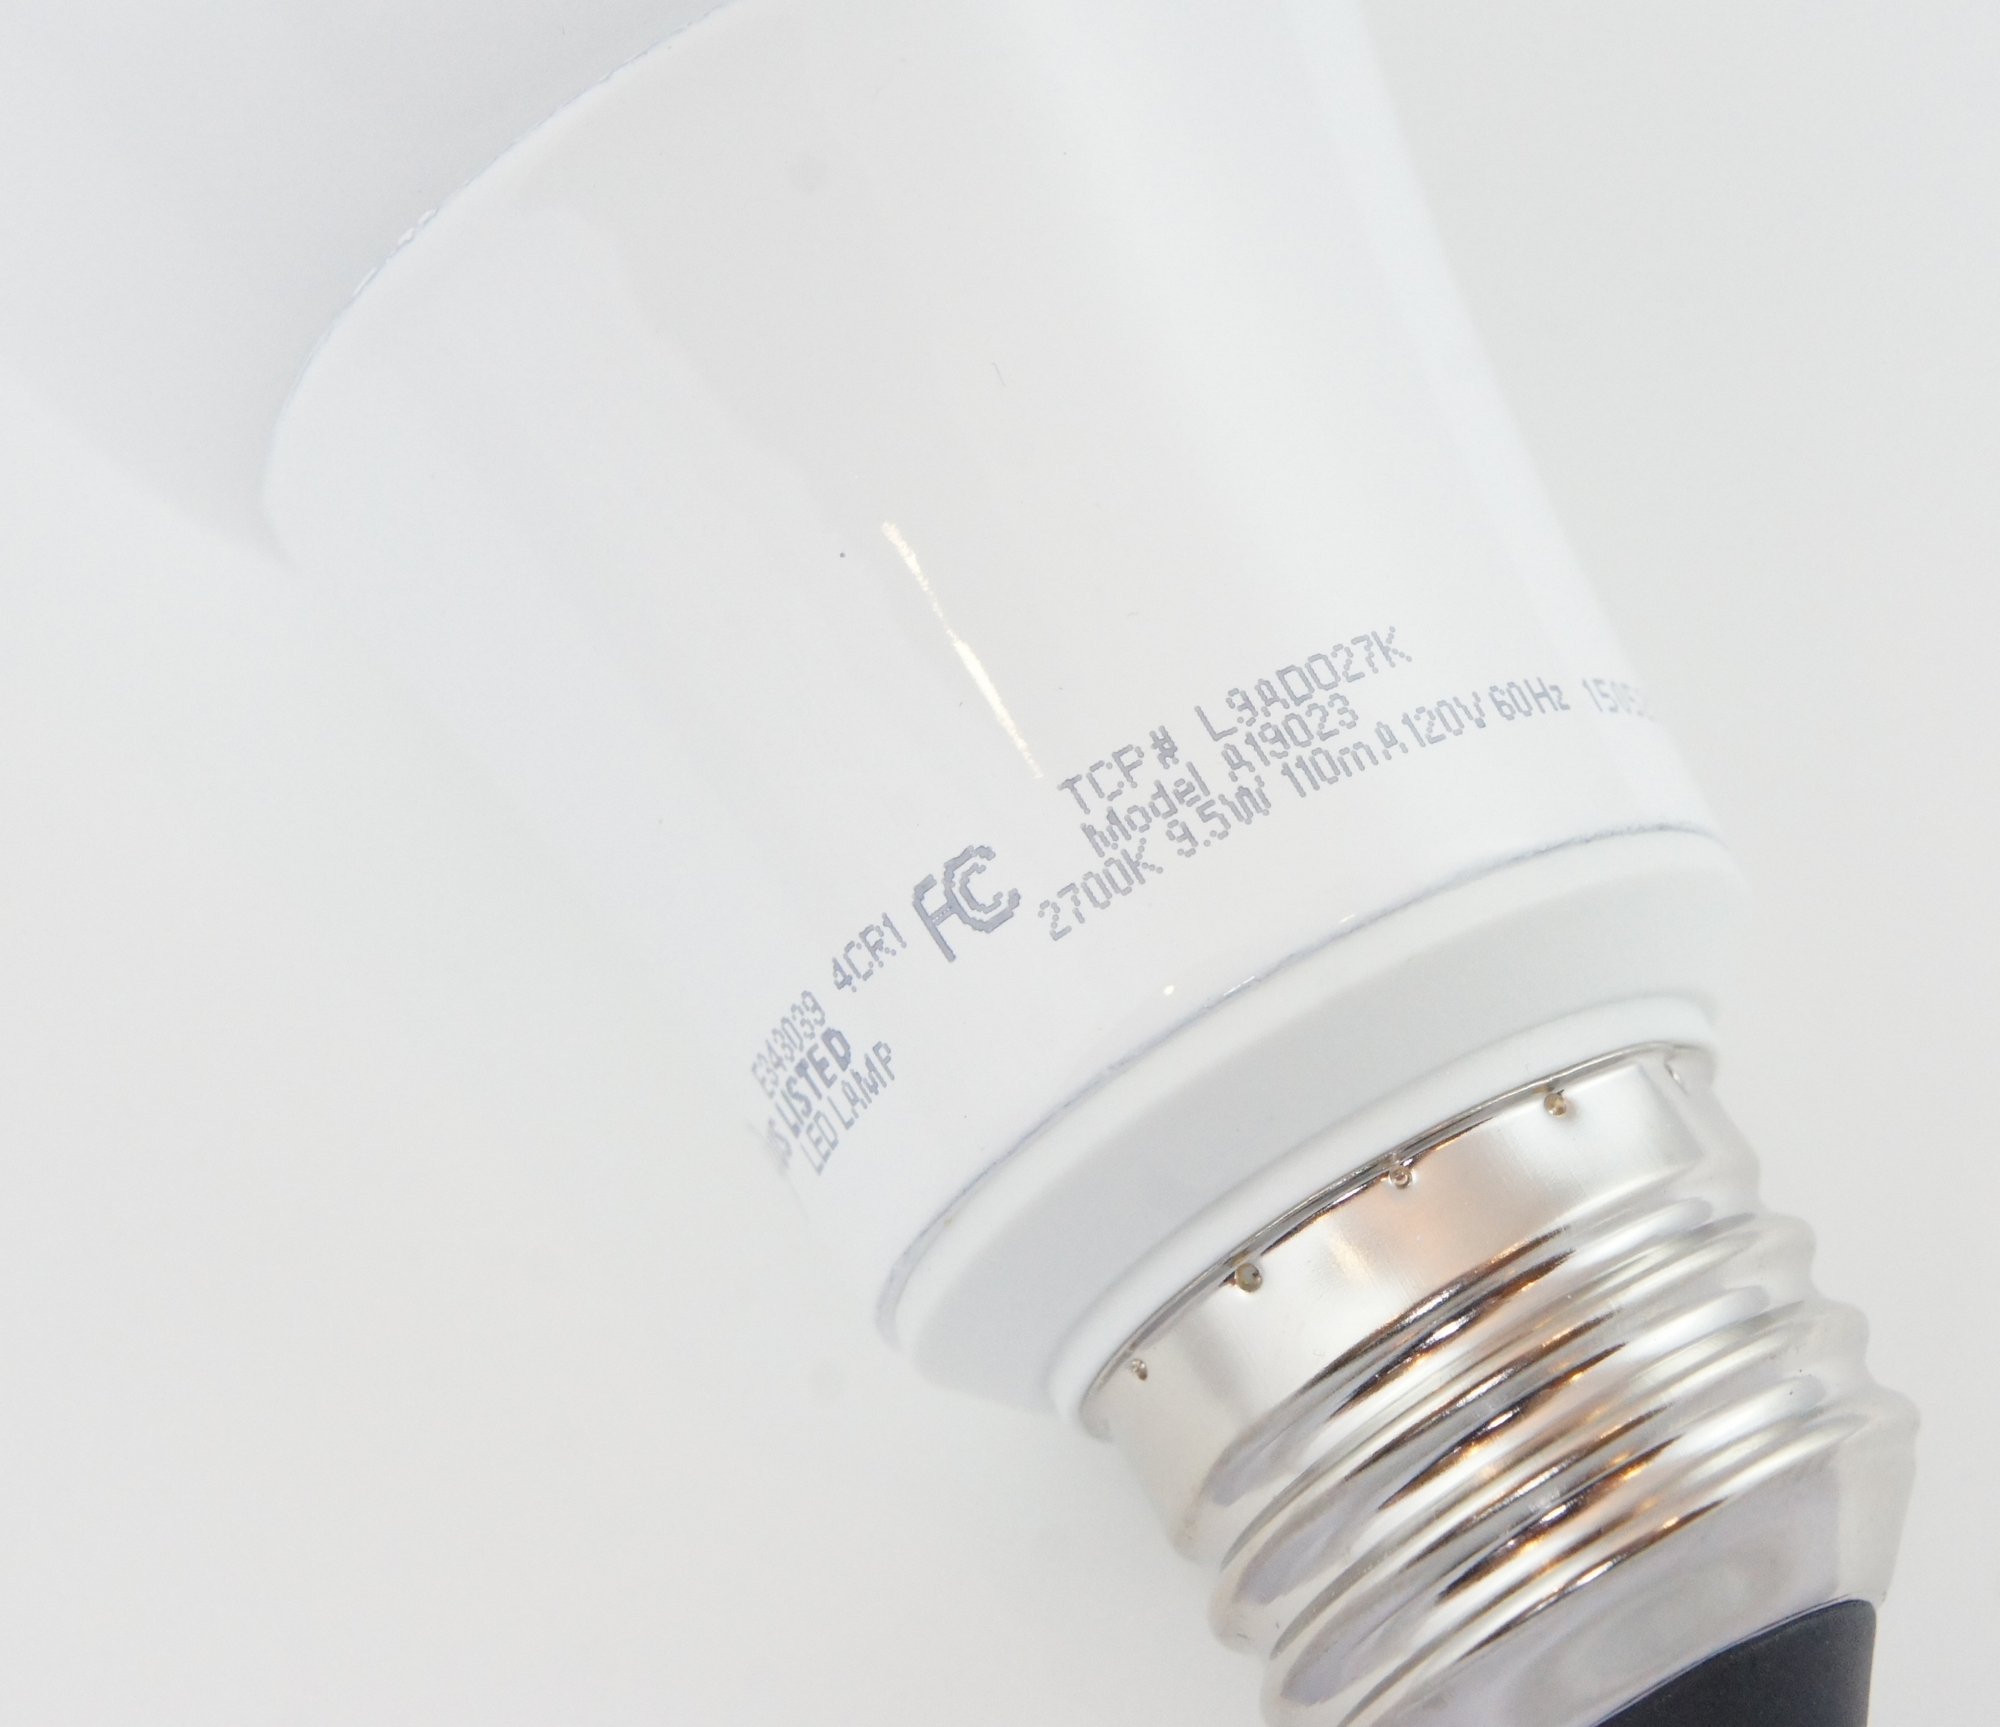 220V LED lamps: characteristics, labeling, selection criteria, review of the best brands 21